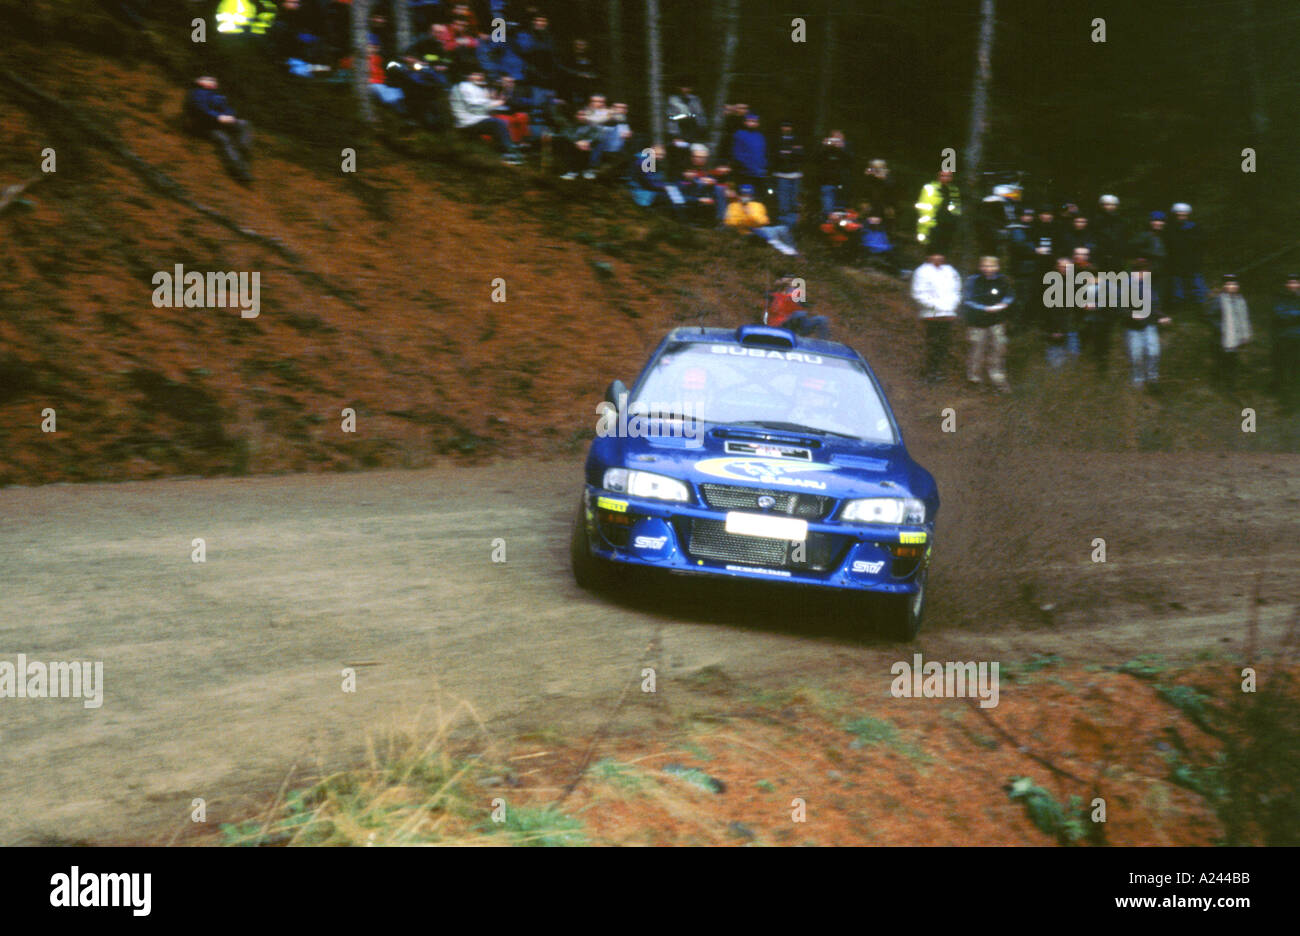 Subaru Impreza Rally Car Stock Photos Subaru Impreza Rally Car